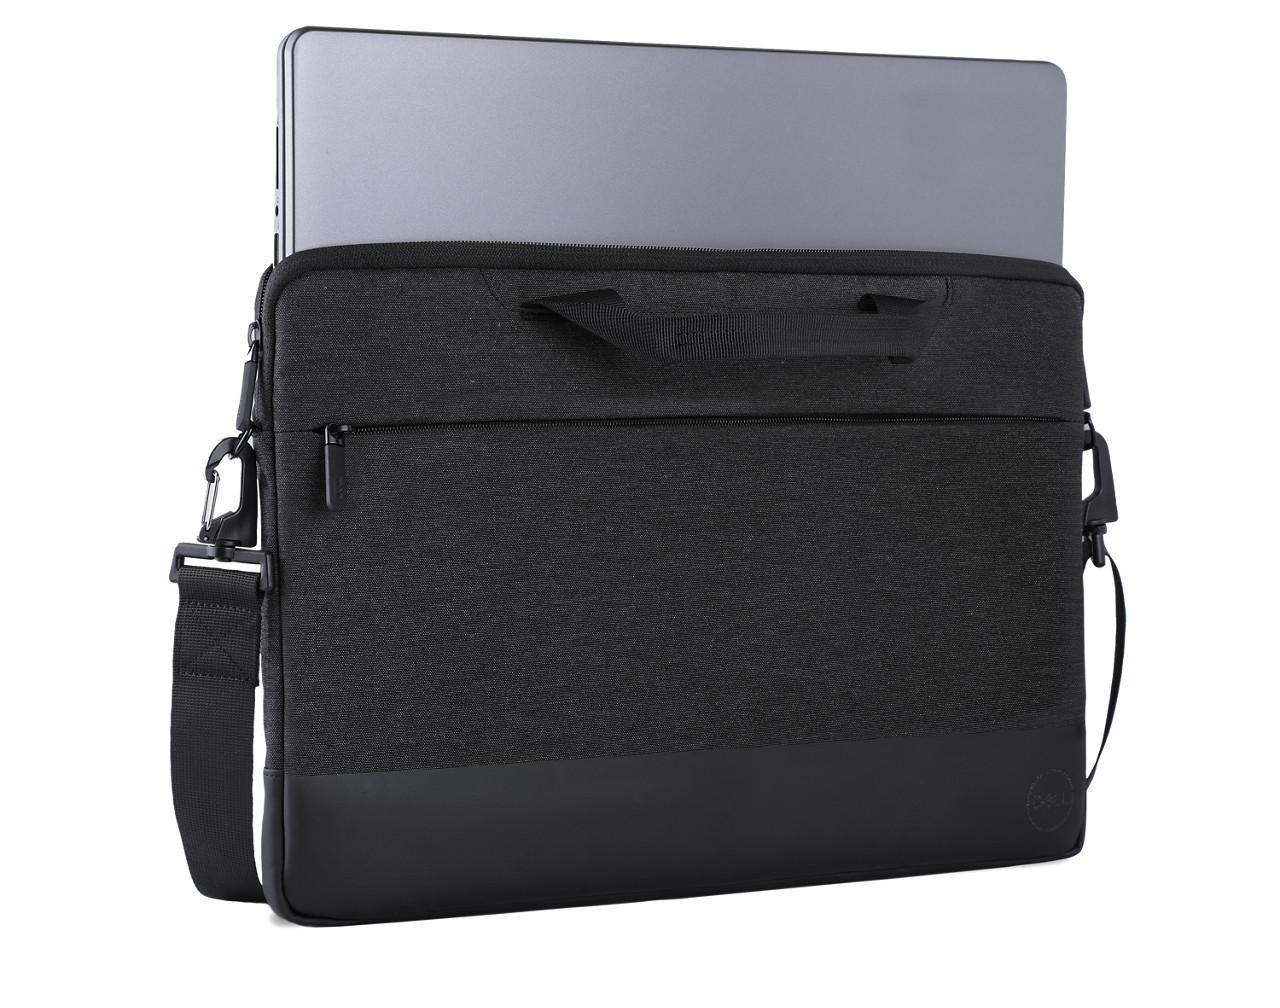 Geanta Dell Notebook Carrying Case Professional 15'' - imaginea 1